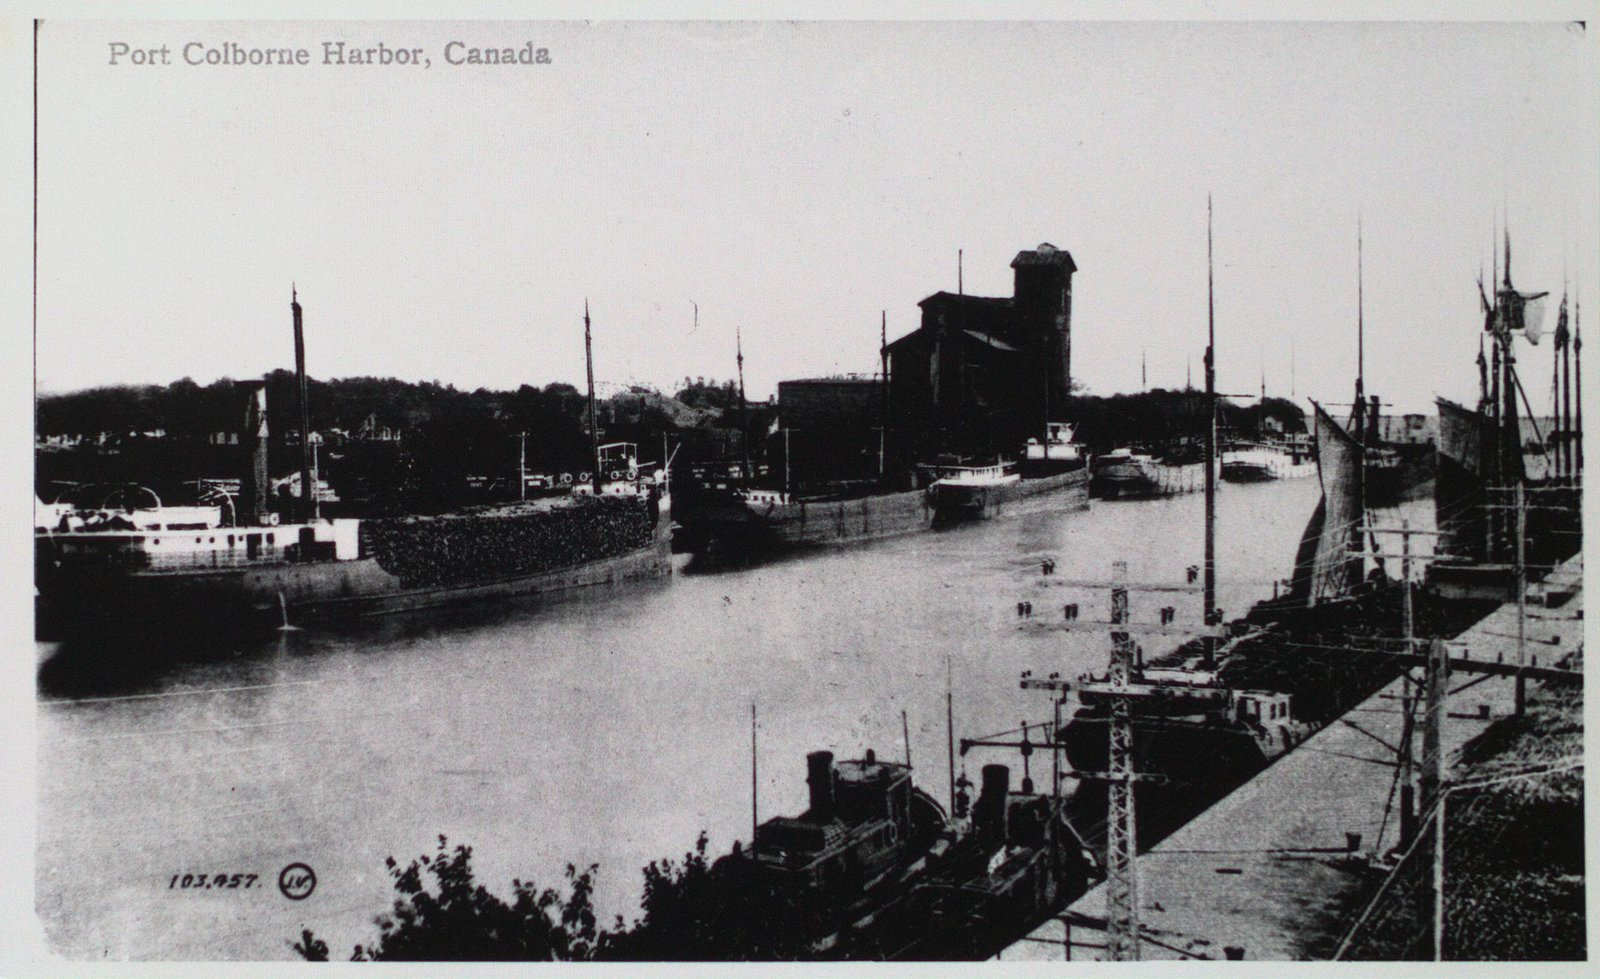 Second Welland Canal at Port Colborne